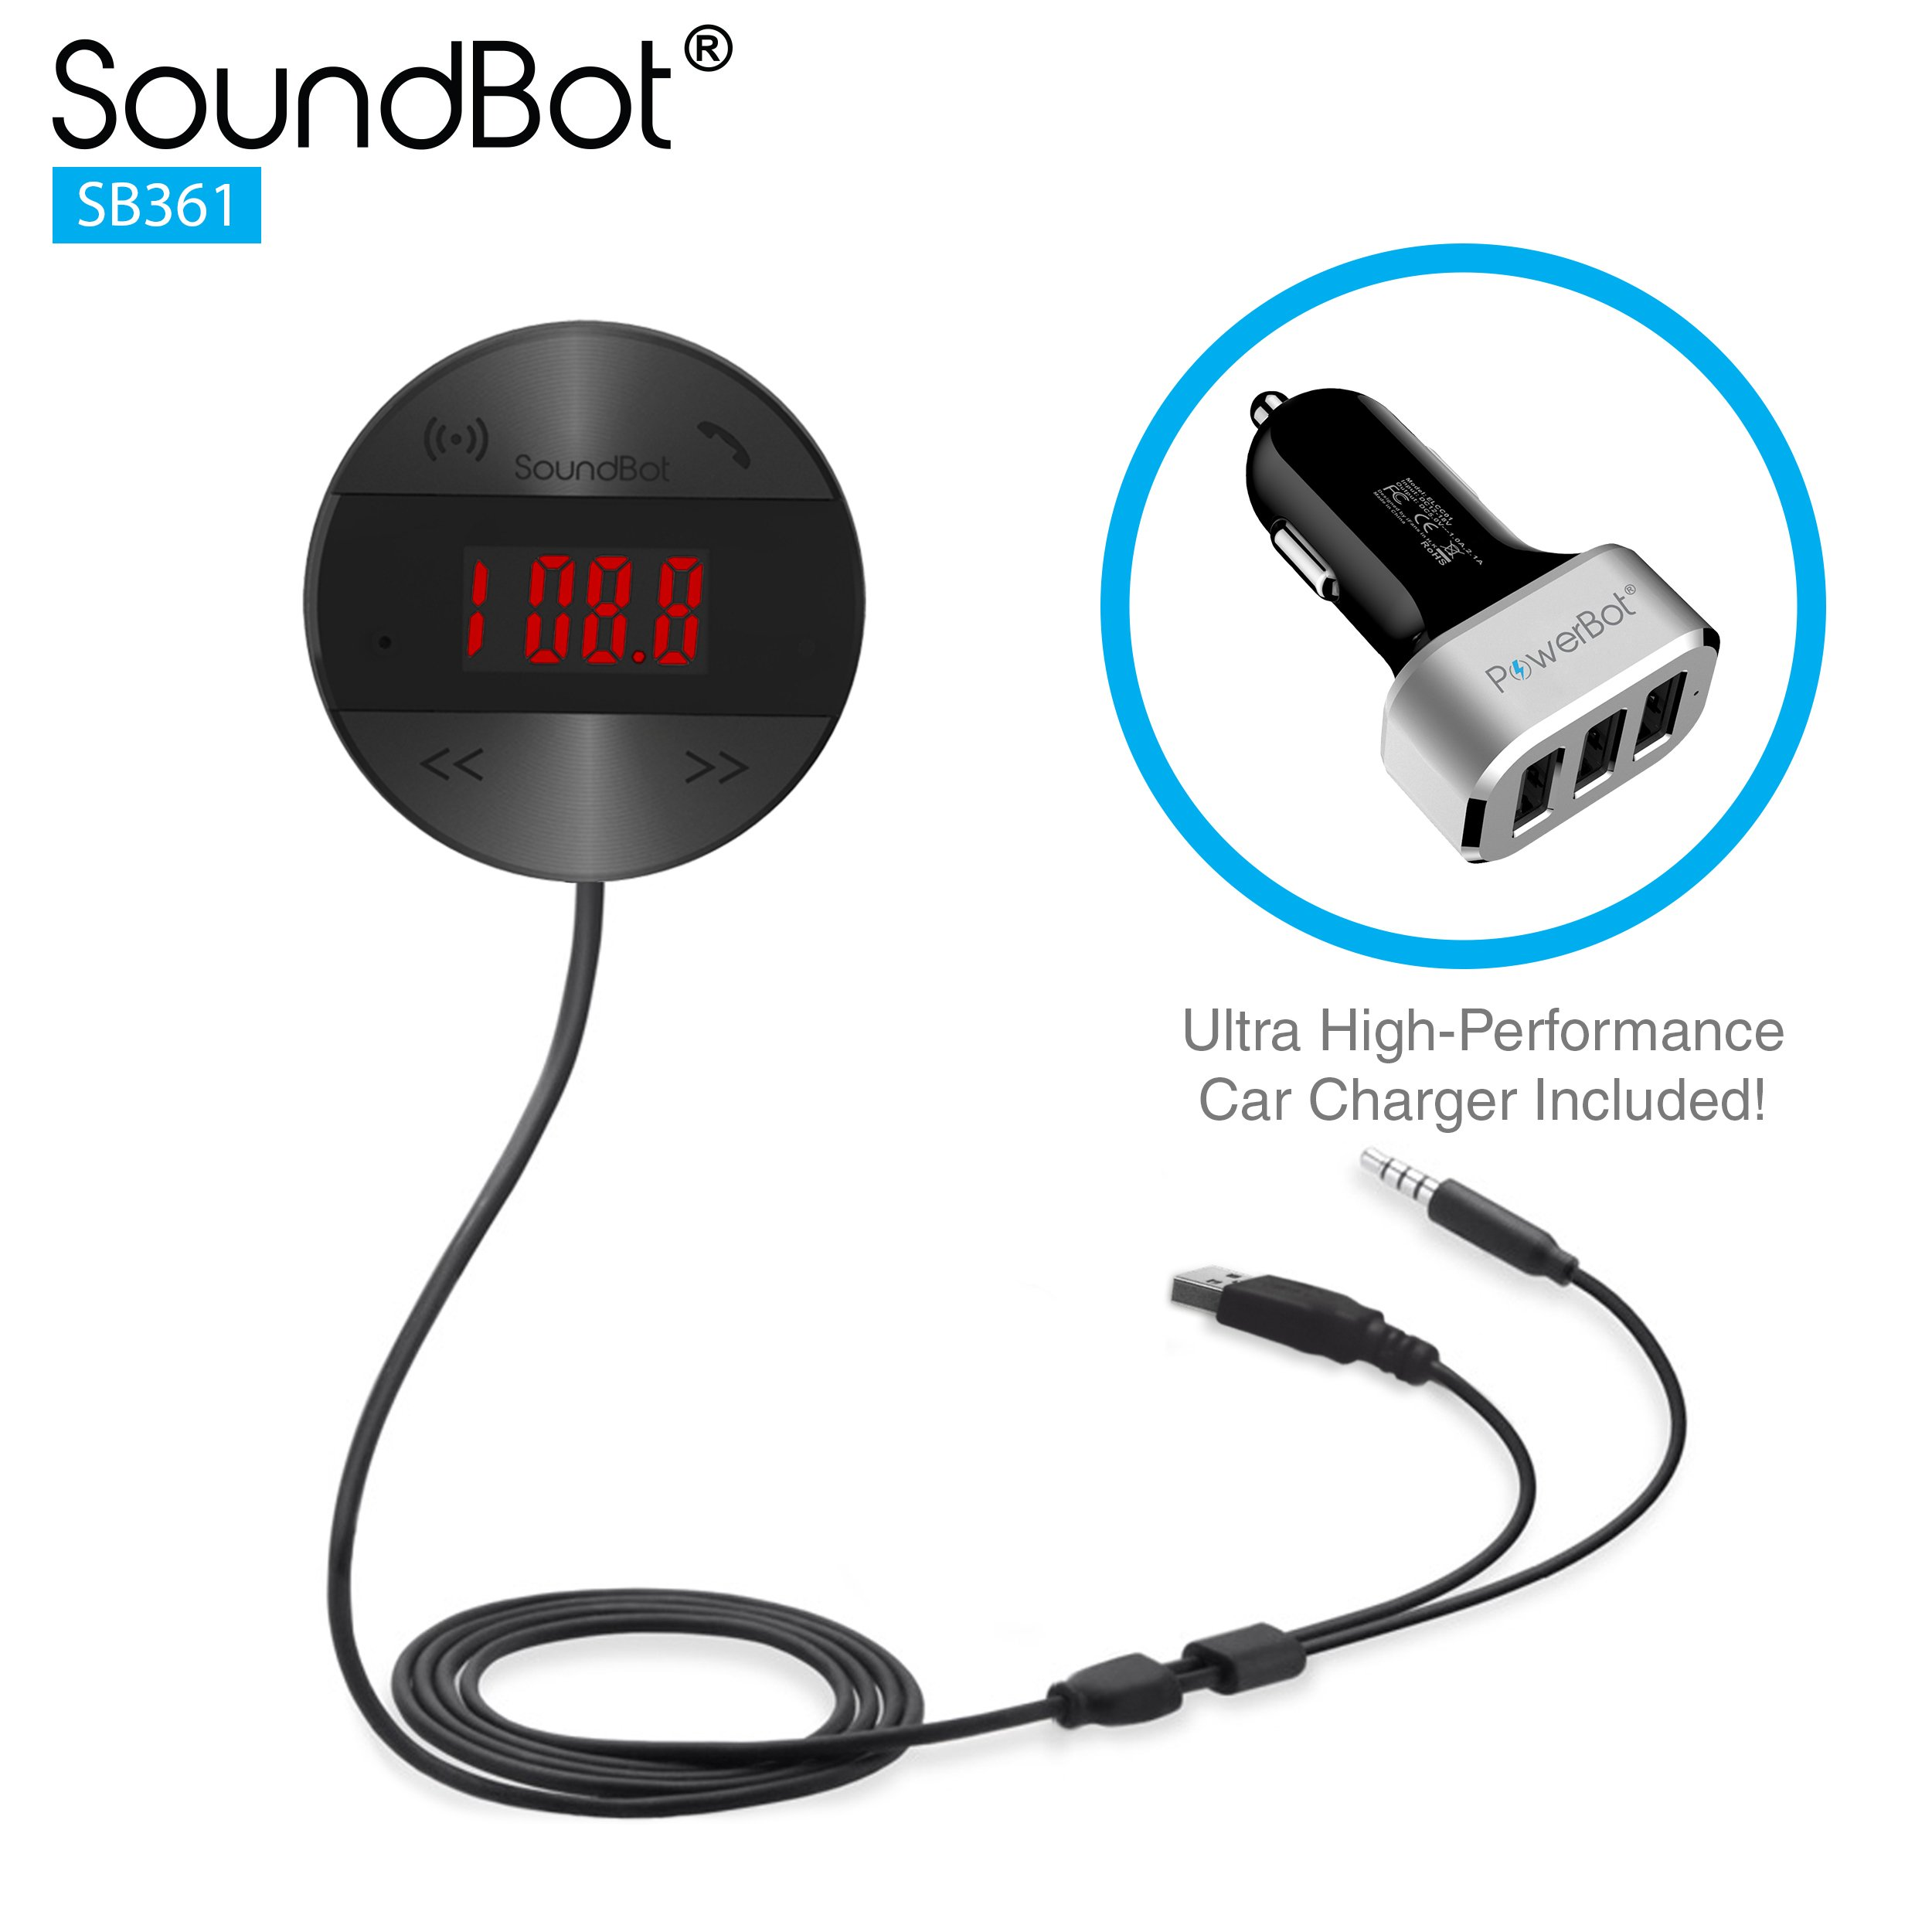 SoundBot SB361 FM RADIO Wireless Transmitter Receiver Adapter Universal Car Kit Music Streaming & Hands-Free Talking Dongle 3 Port USB Car Charger Bundle + Magnetic Mount